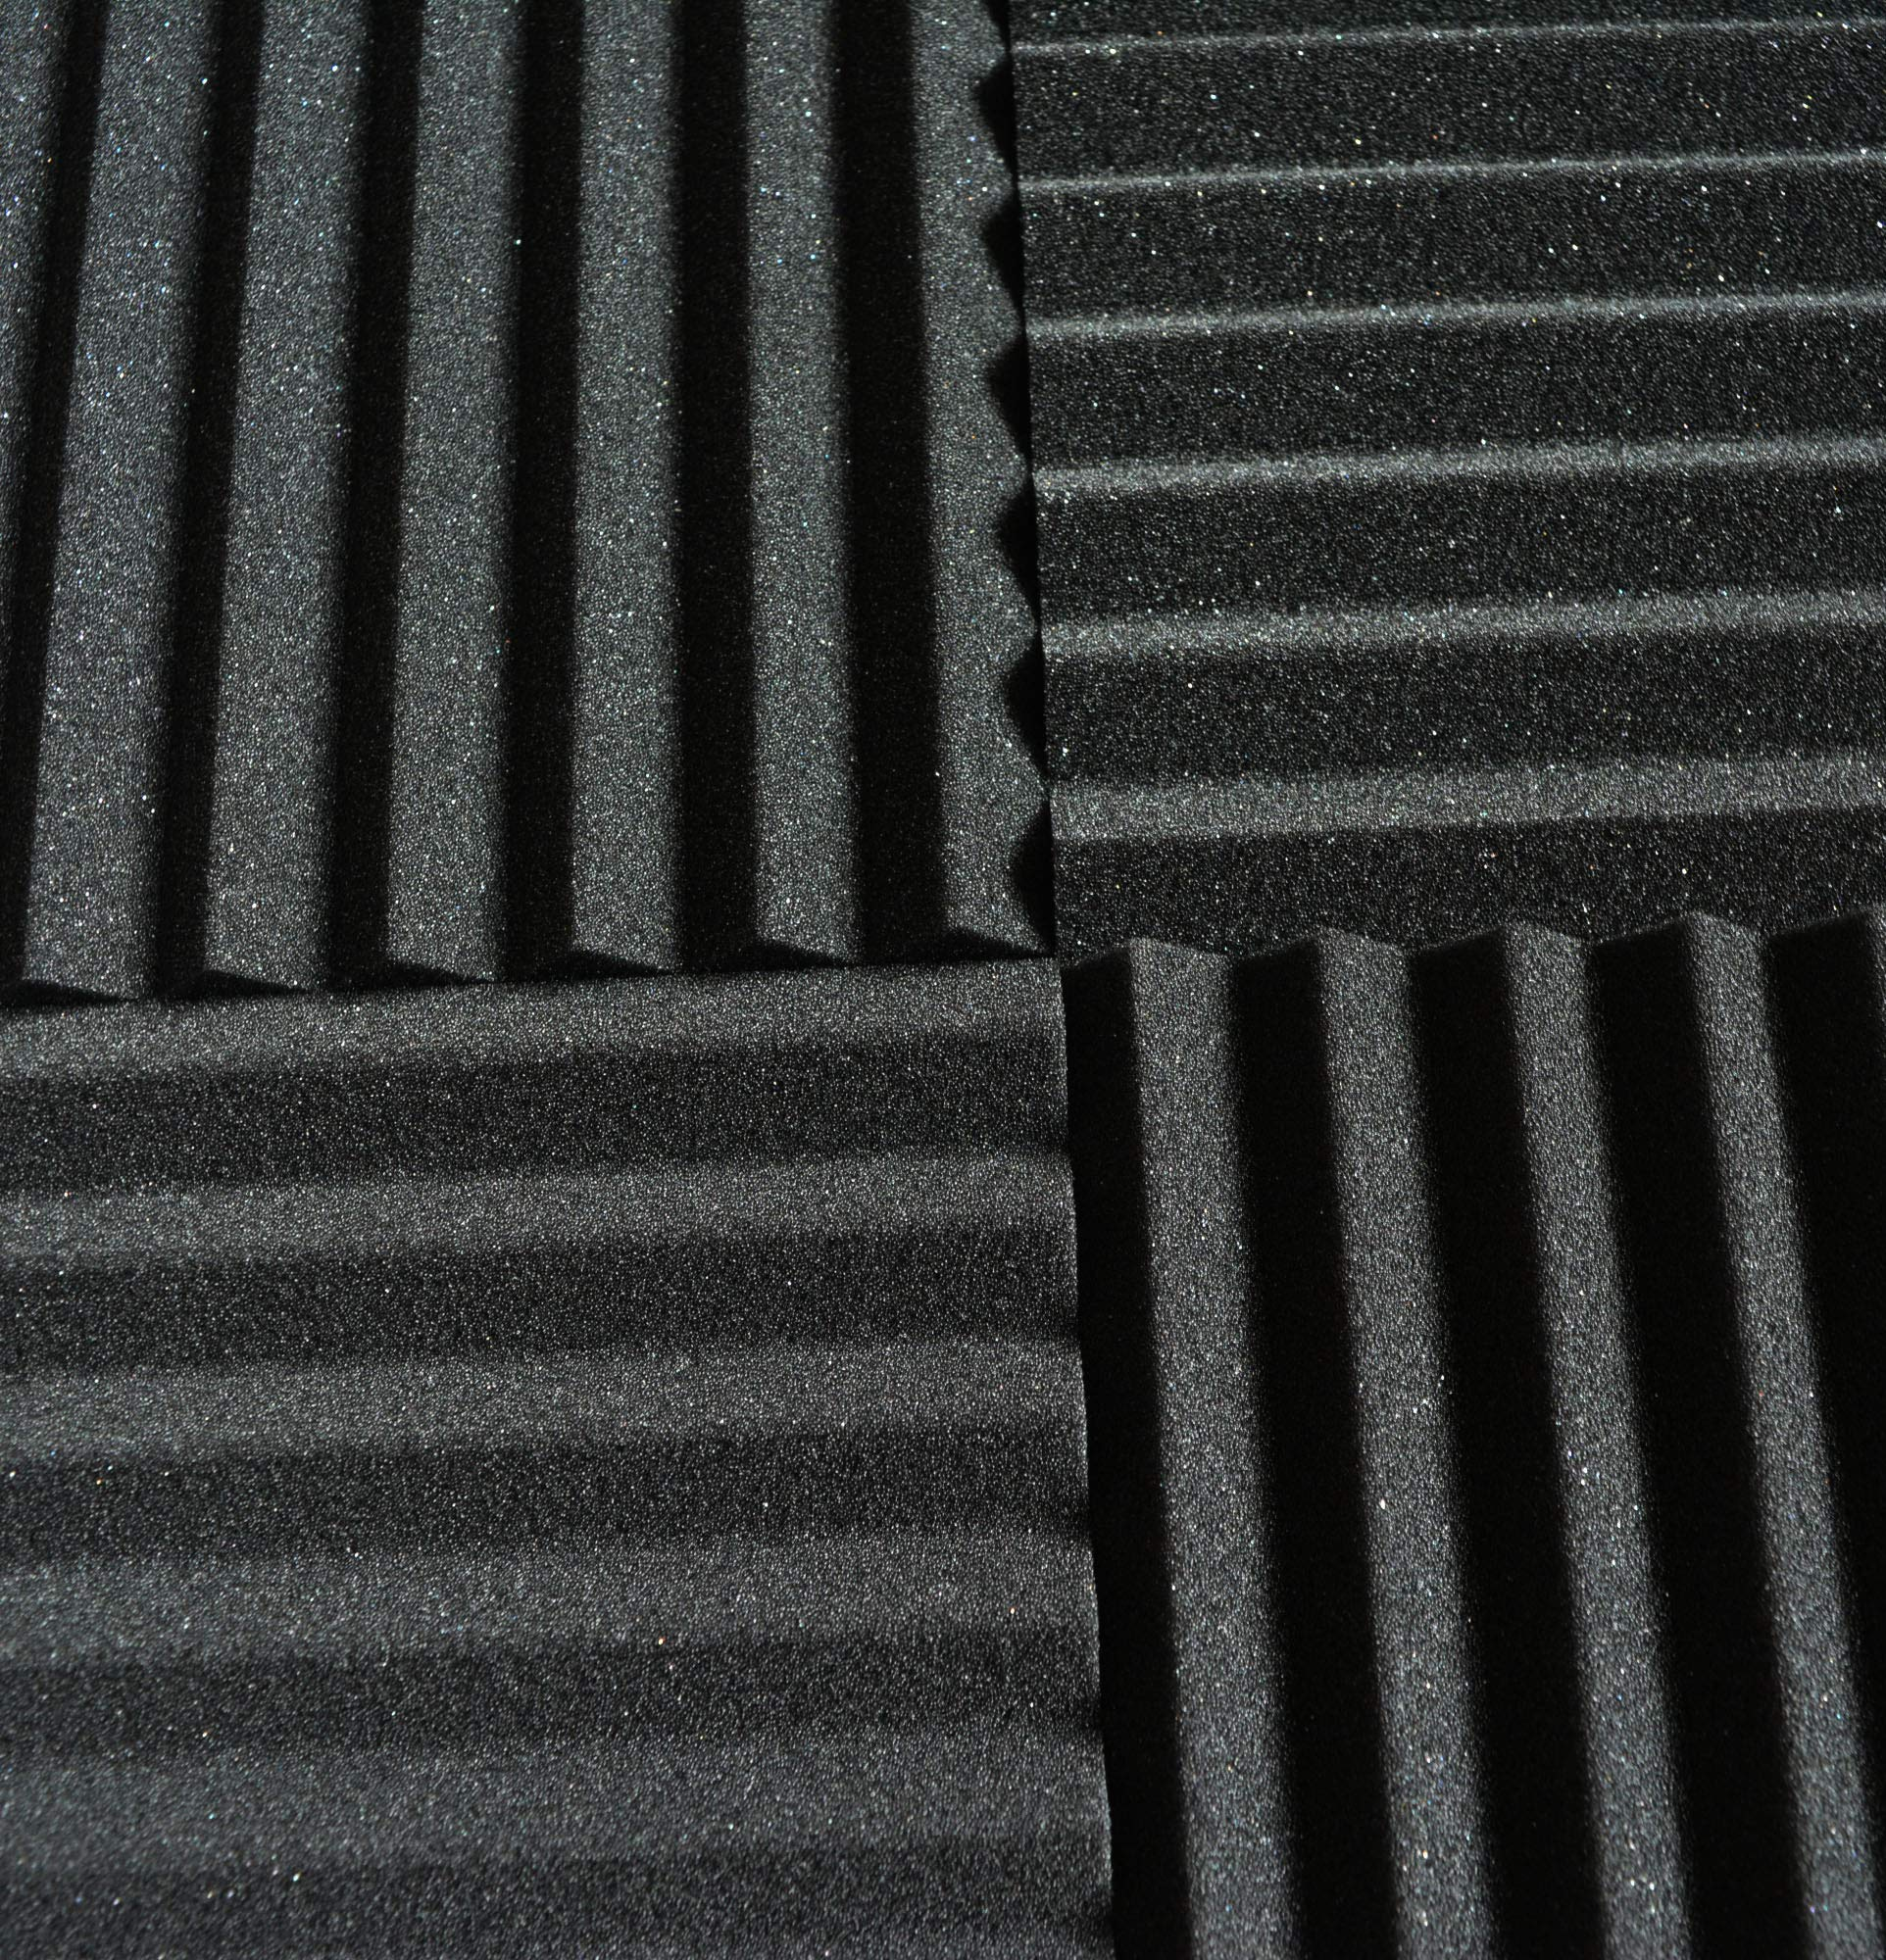 52 Pack 1'' x 12'' x 12'' Black/BLUE Acoustic Wedge Studio Foam Sound Absorption Wall Panels (BLACK/BLUE)